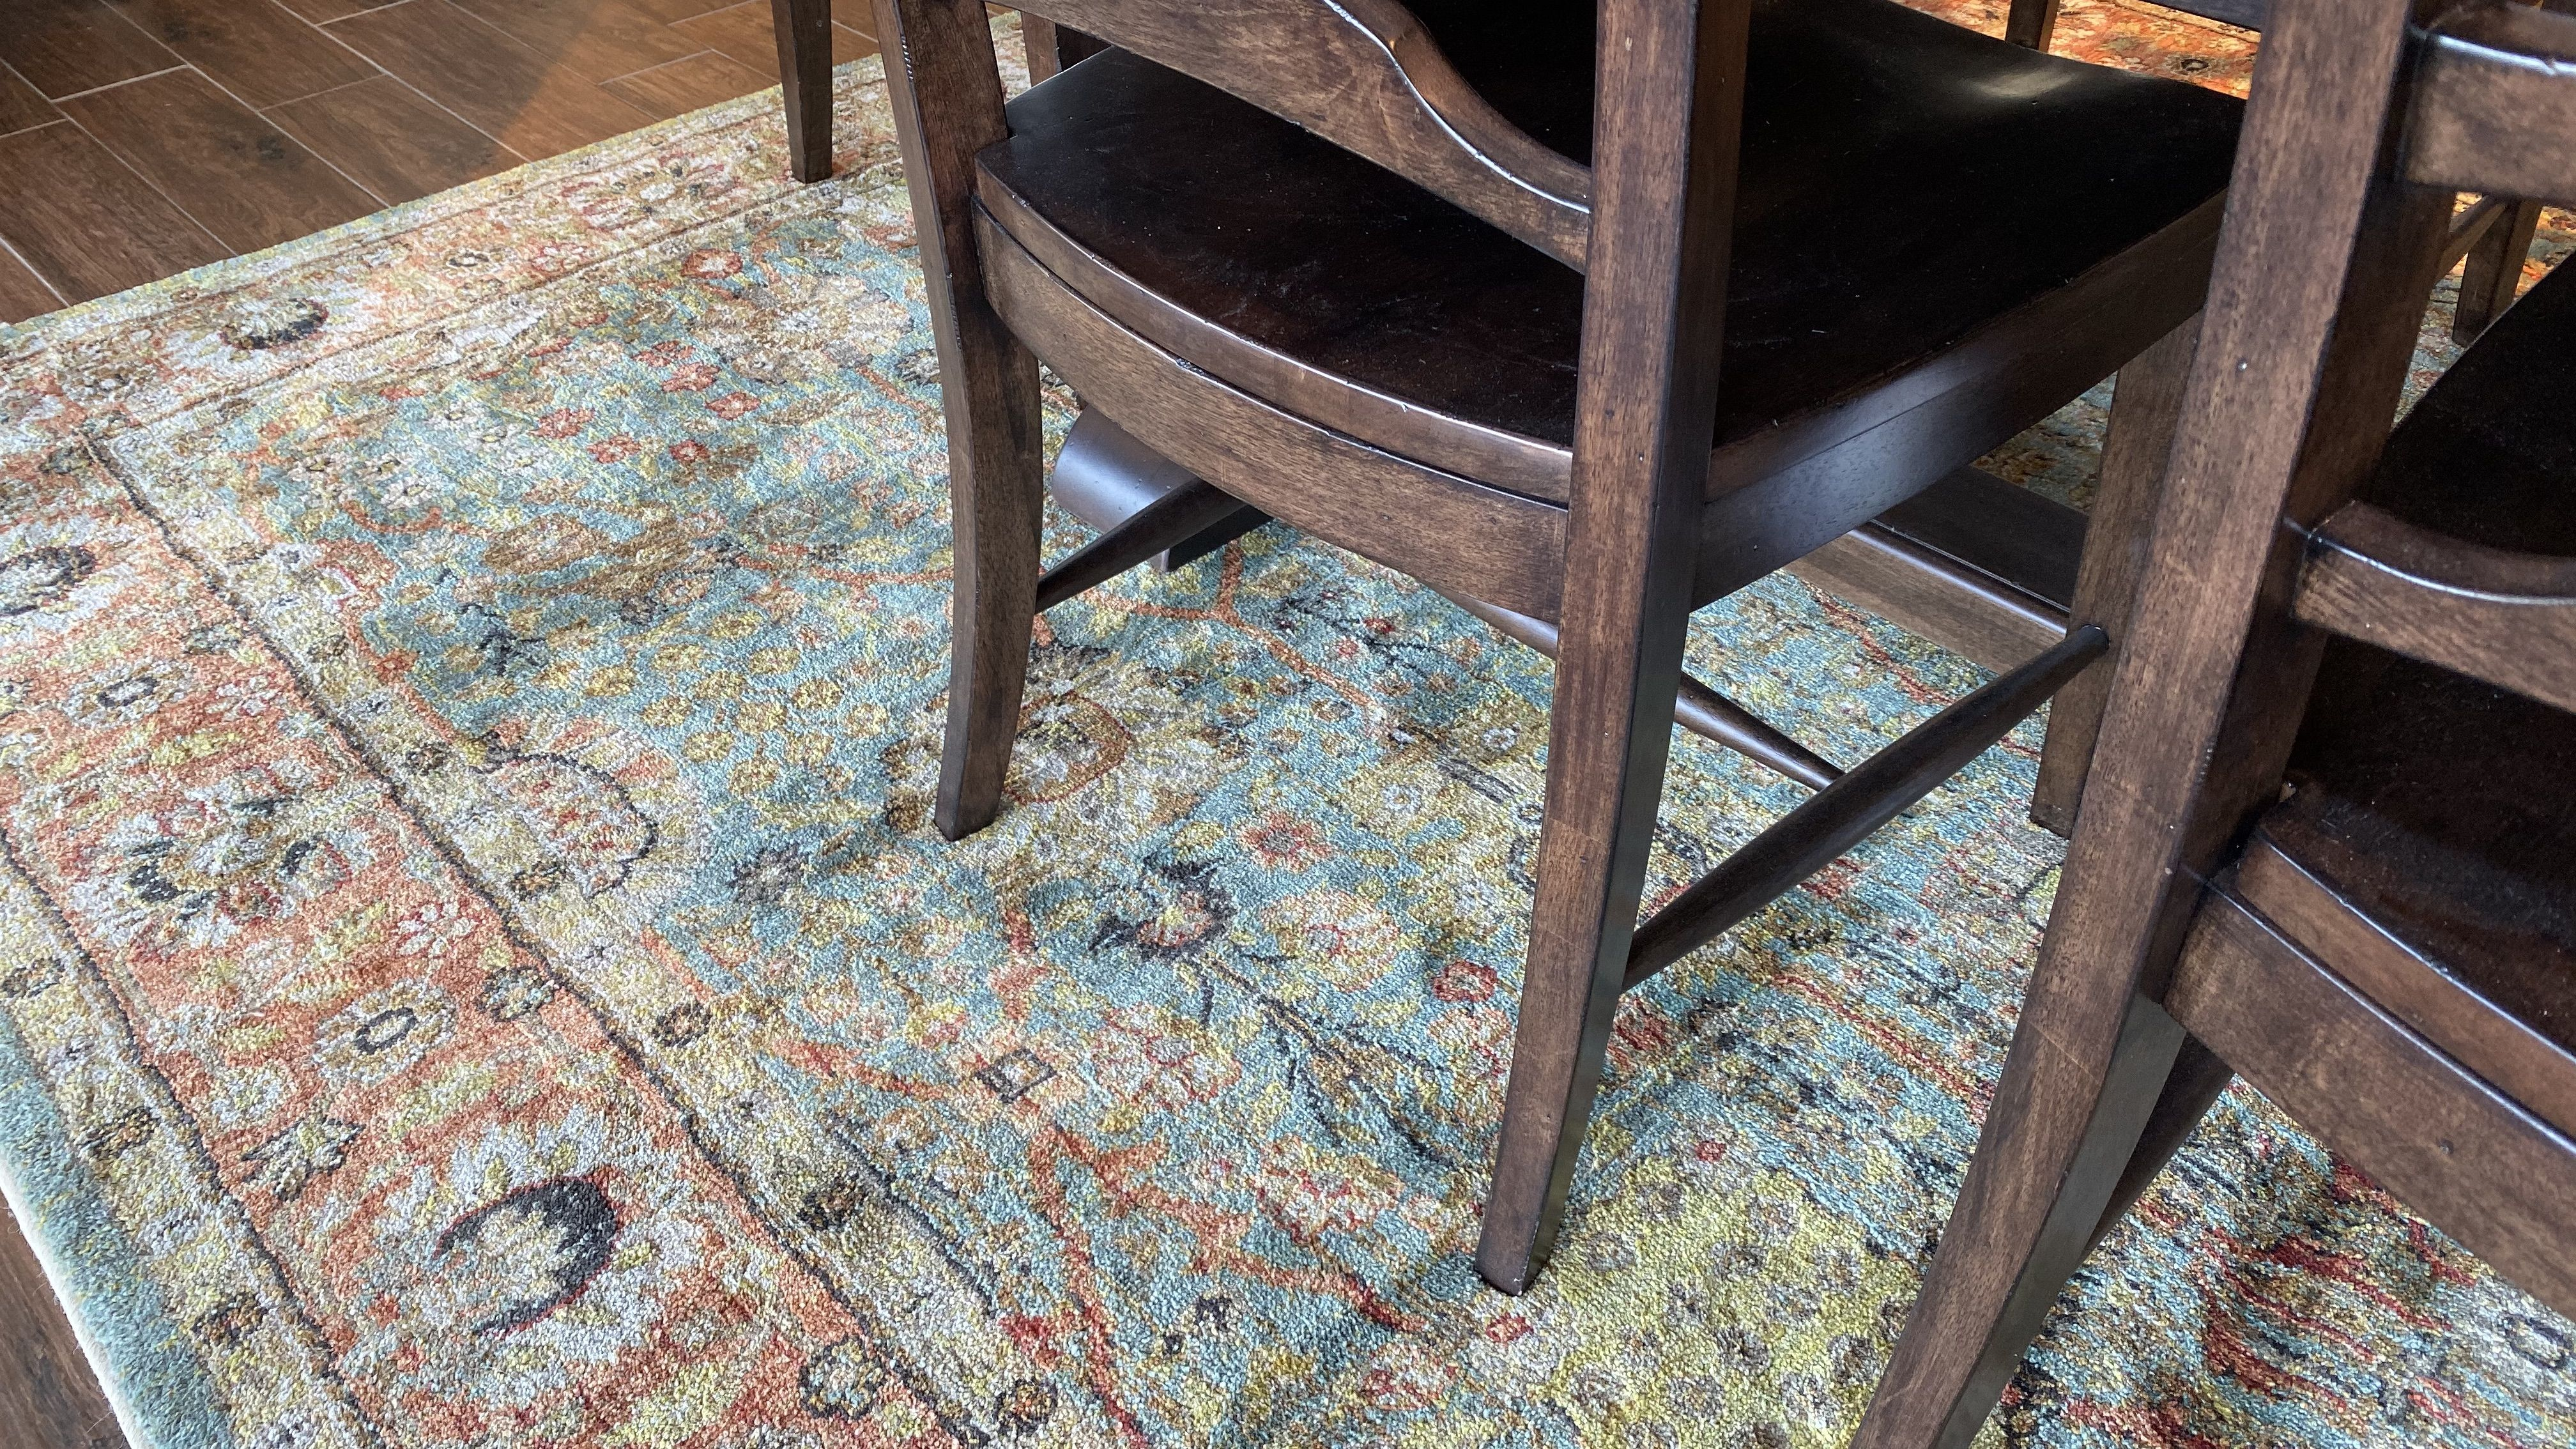 Add a rug under your dining table